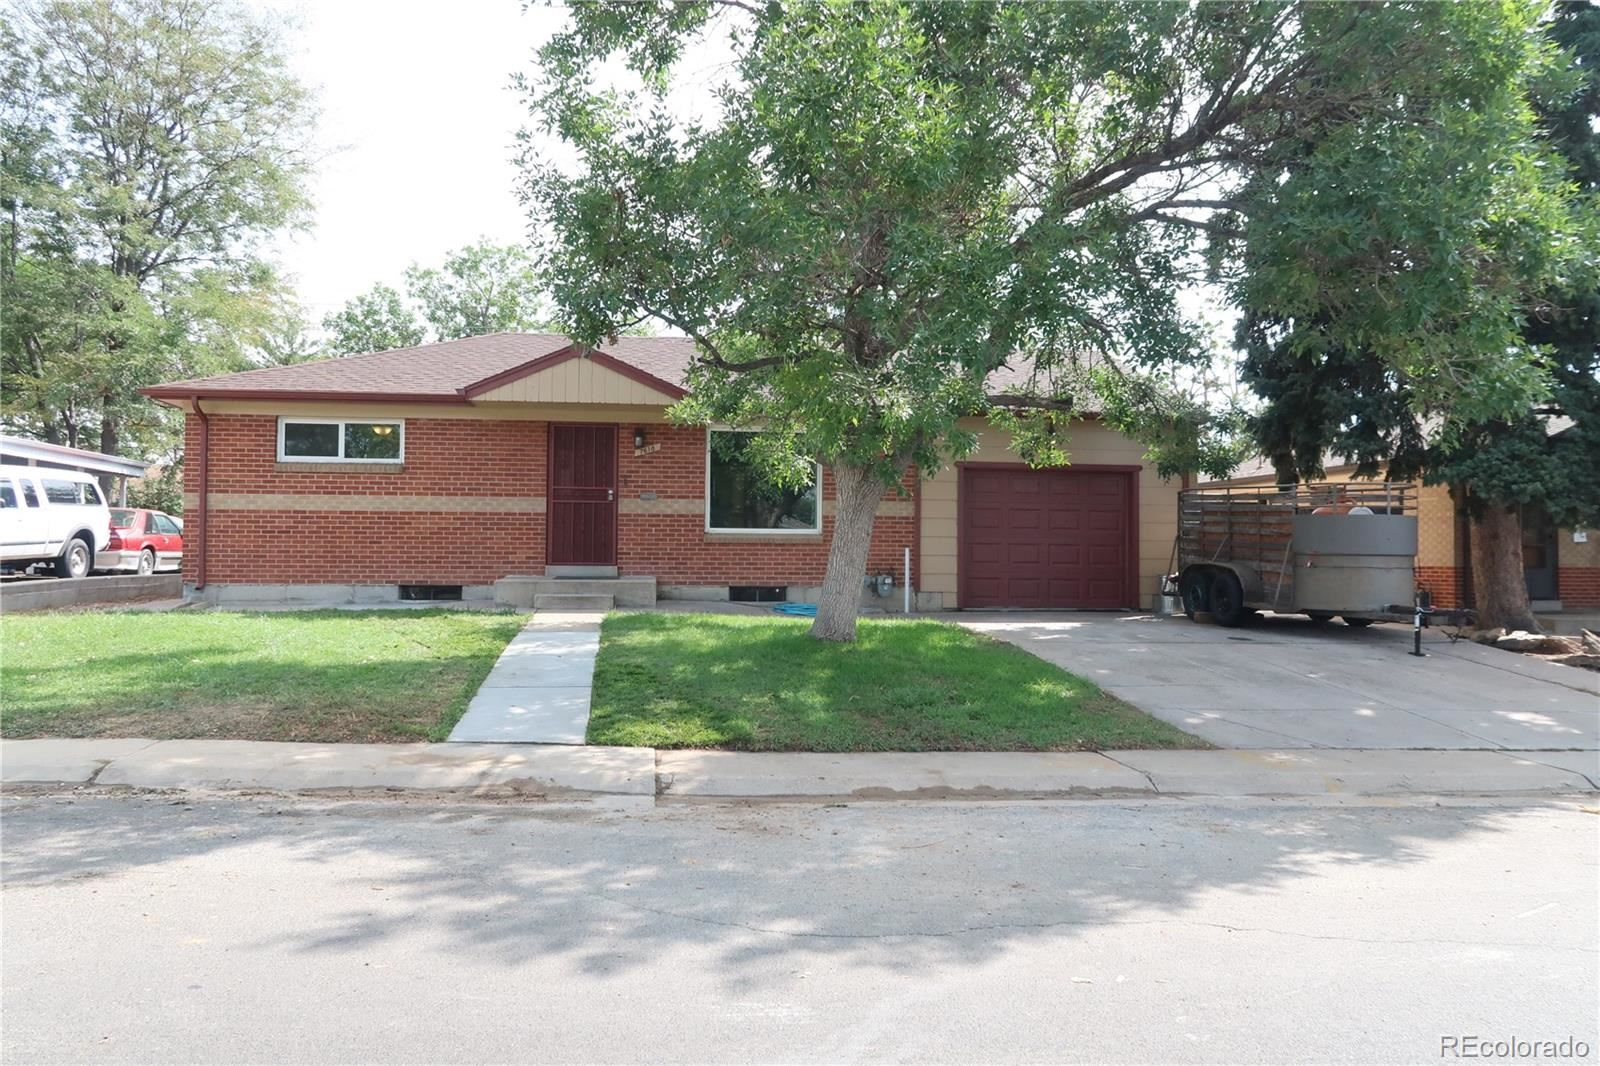 7618 Quivas Street, Denver, CO 80221 - #: 4559887